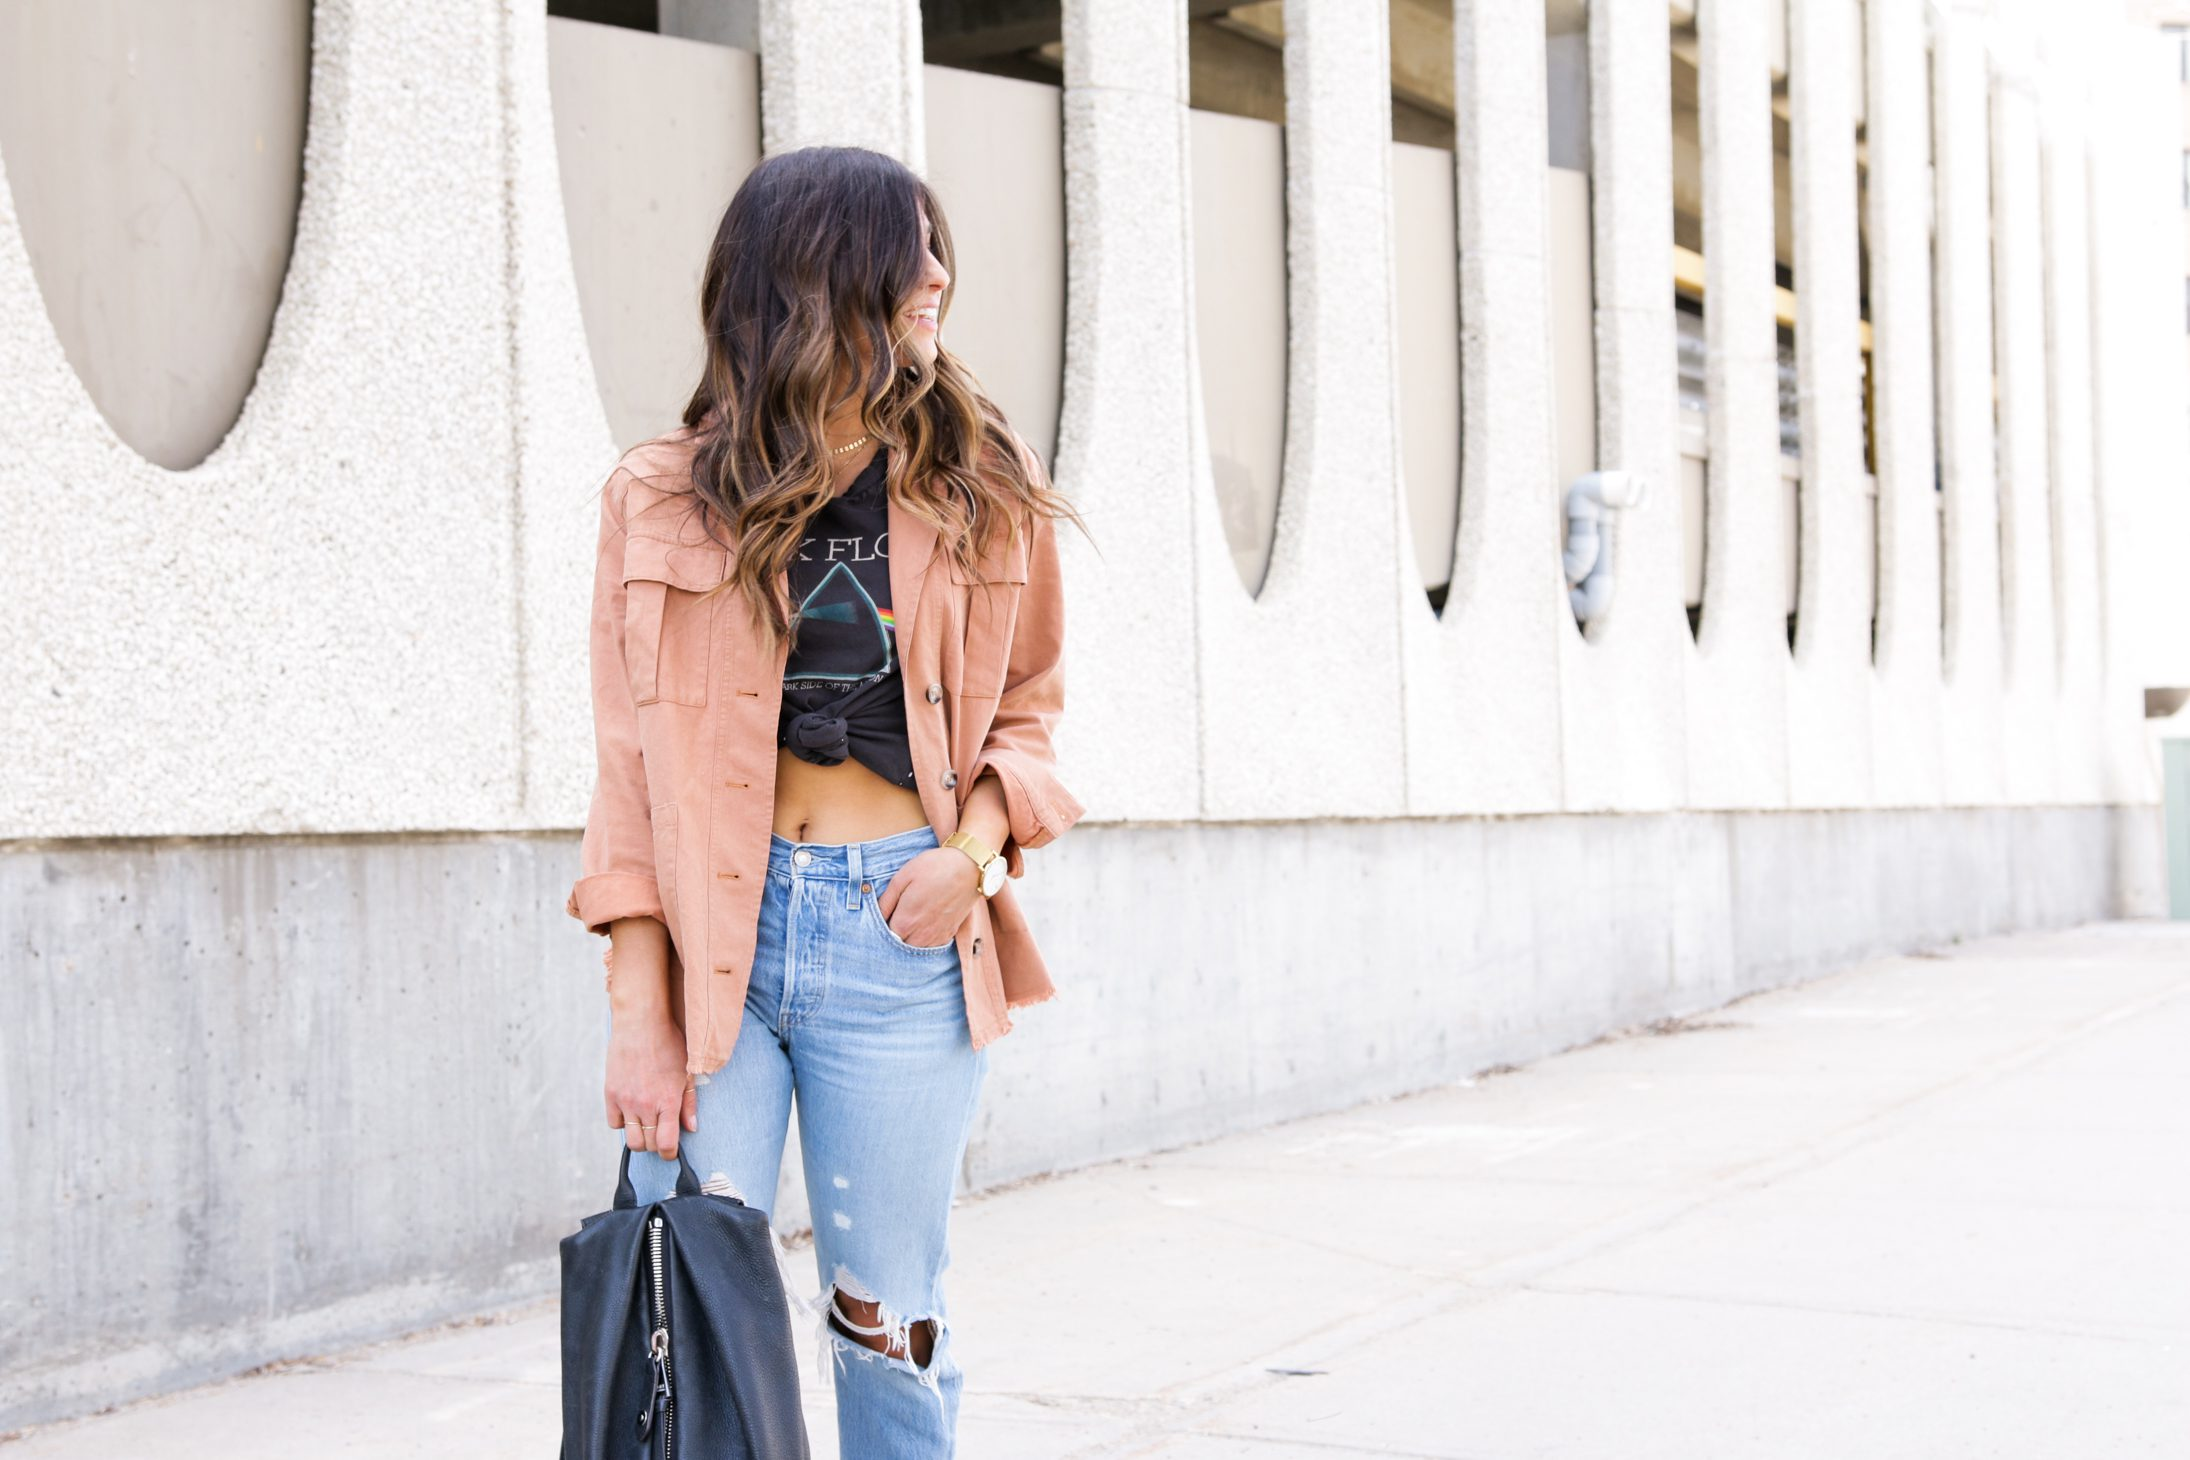 Styling a Spring Jacket 5 Ways